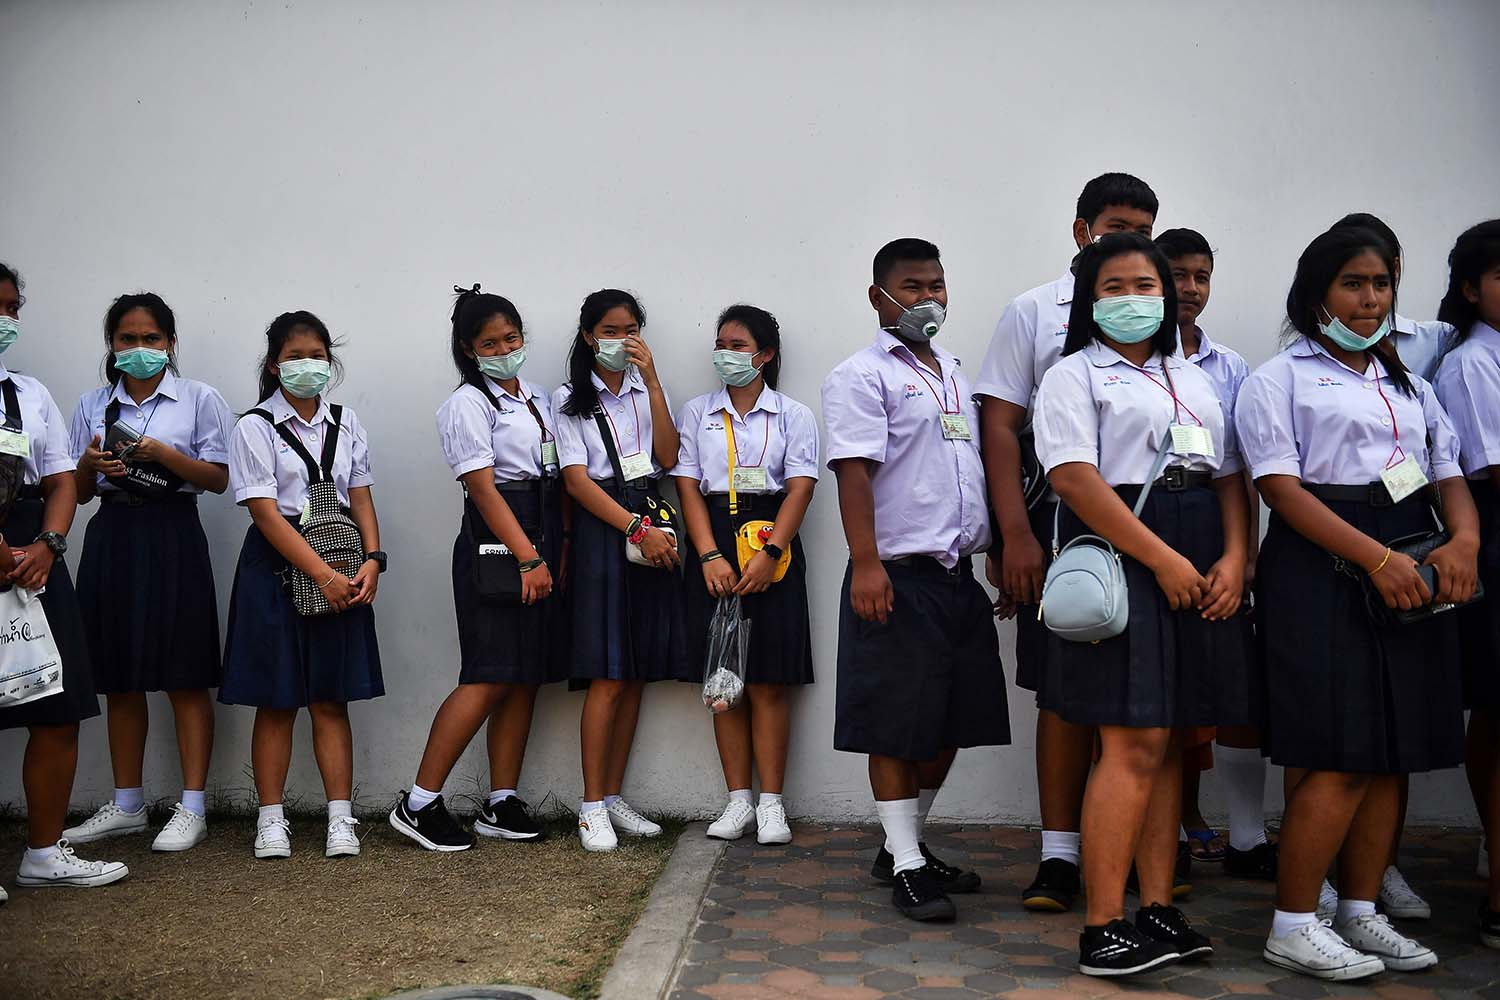 Thai students wearing face masks in efforts to stem the spread of the novel coronavirus line up in front of the Grand Palace in Bangkok on Jan. 29. LILLIAN SUWANRUMPHA/AFP via Getty Images